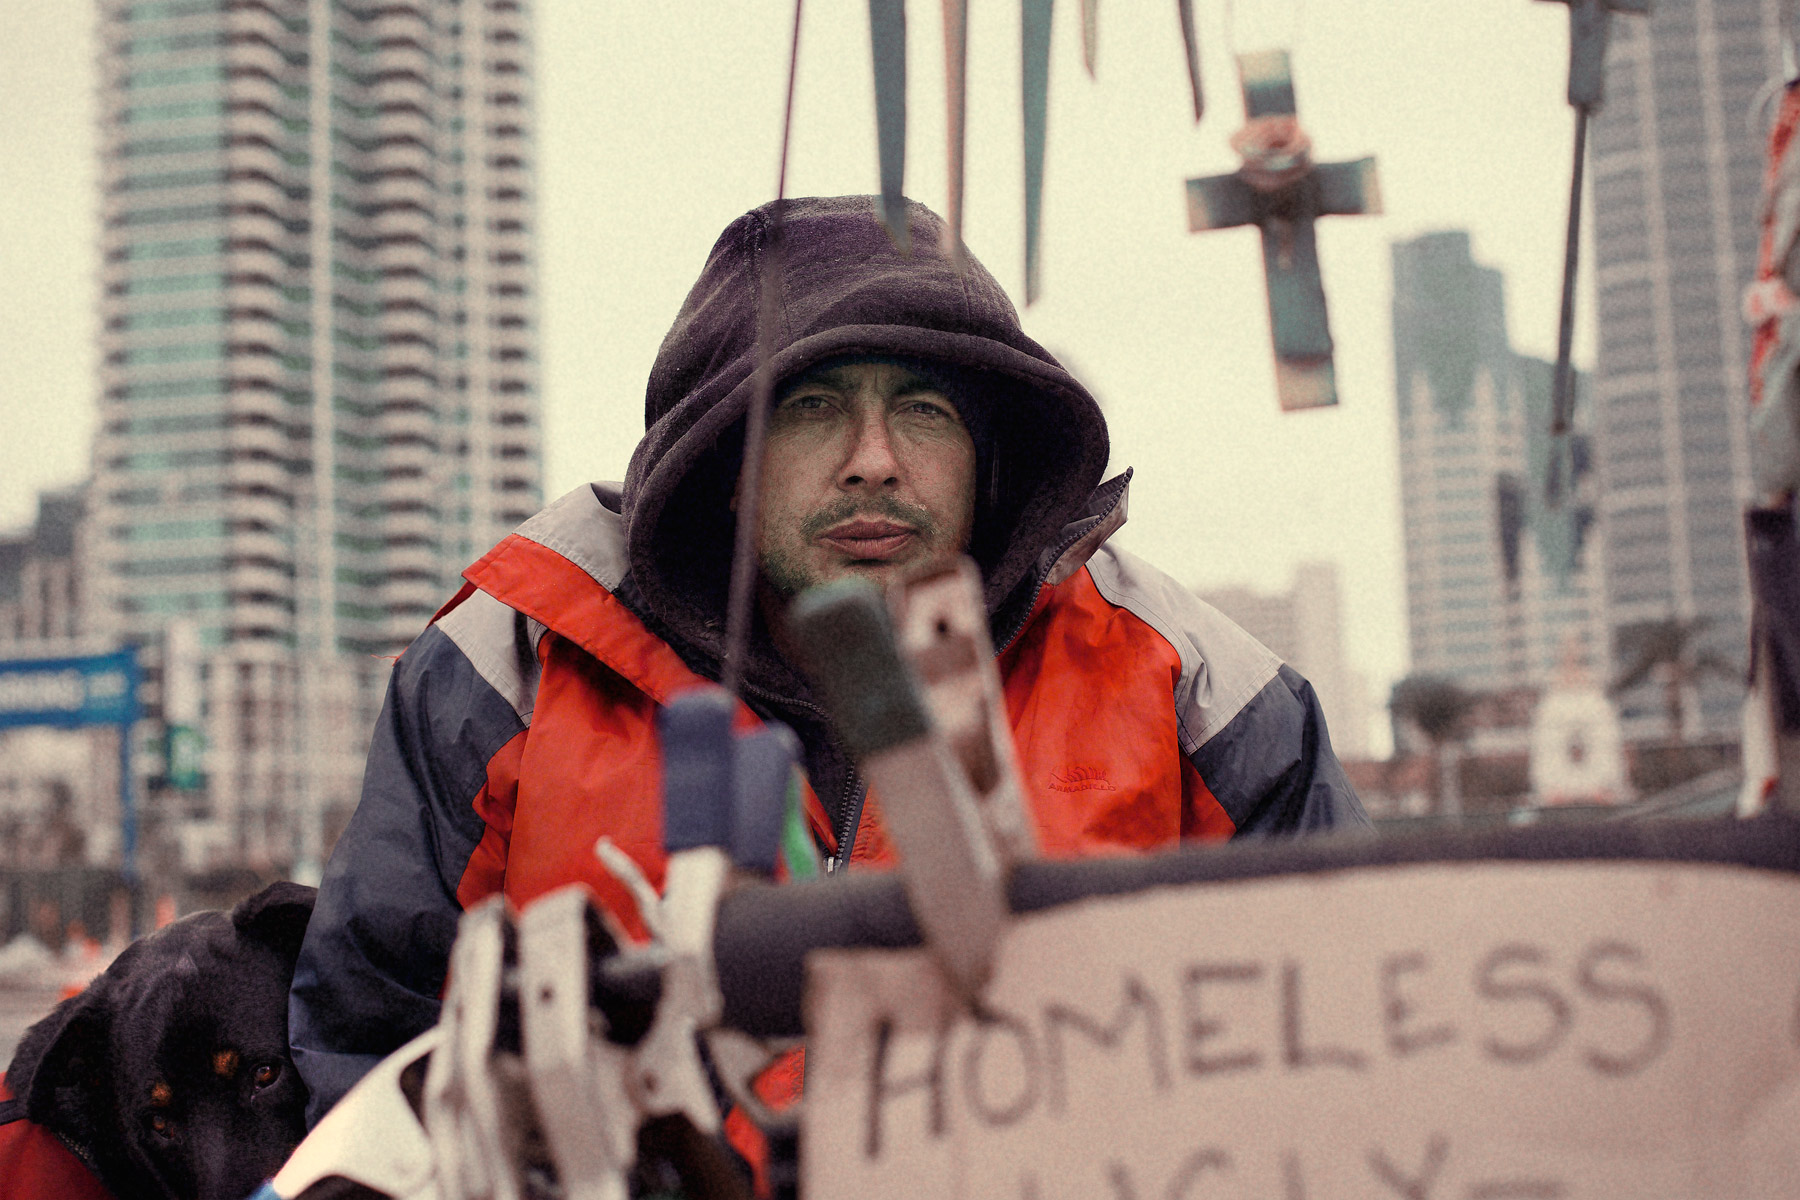 Good Boy Wolf Photographer, filmic portrait, homeless man behind his begging sign